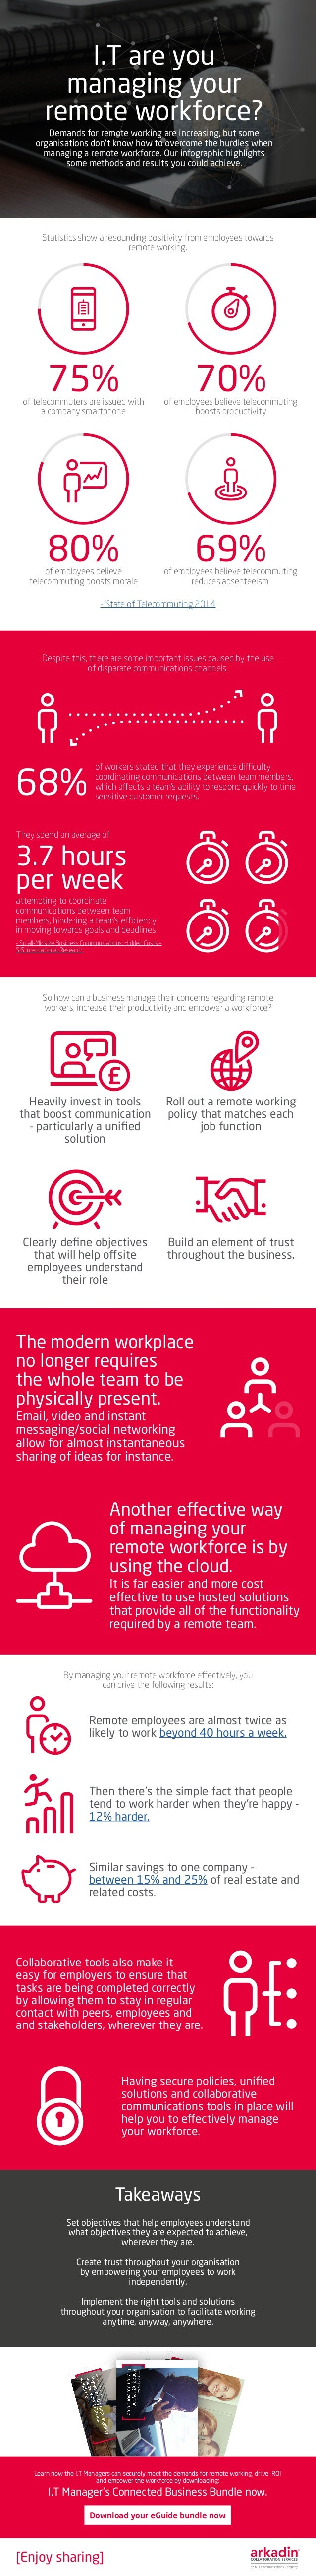 [Enjoy sharing] Download your eGuide bundle now I.T are you managing your remote workforce? Demands for remote working are...